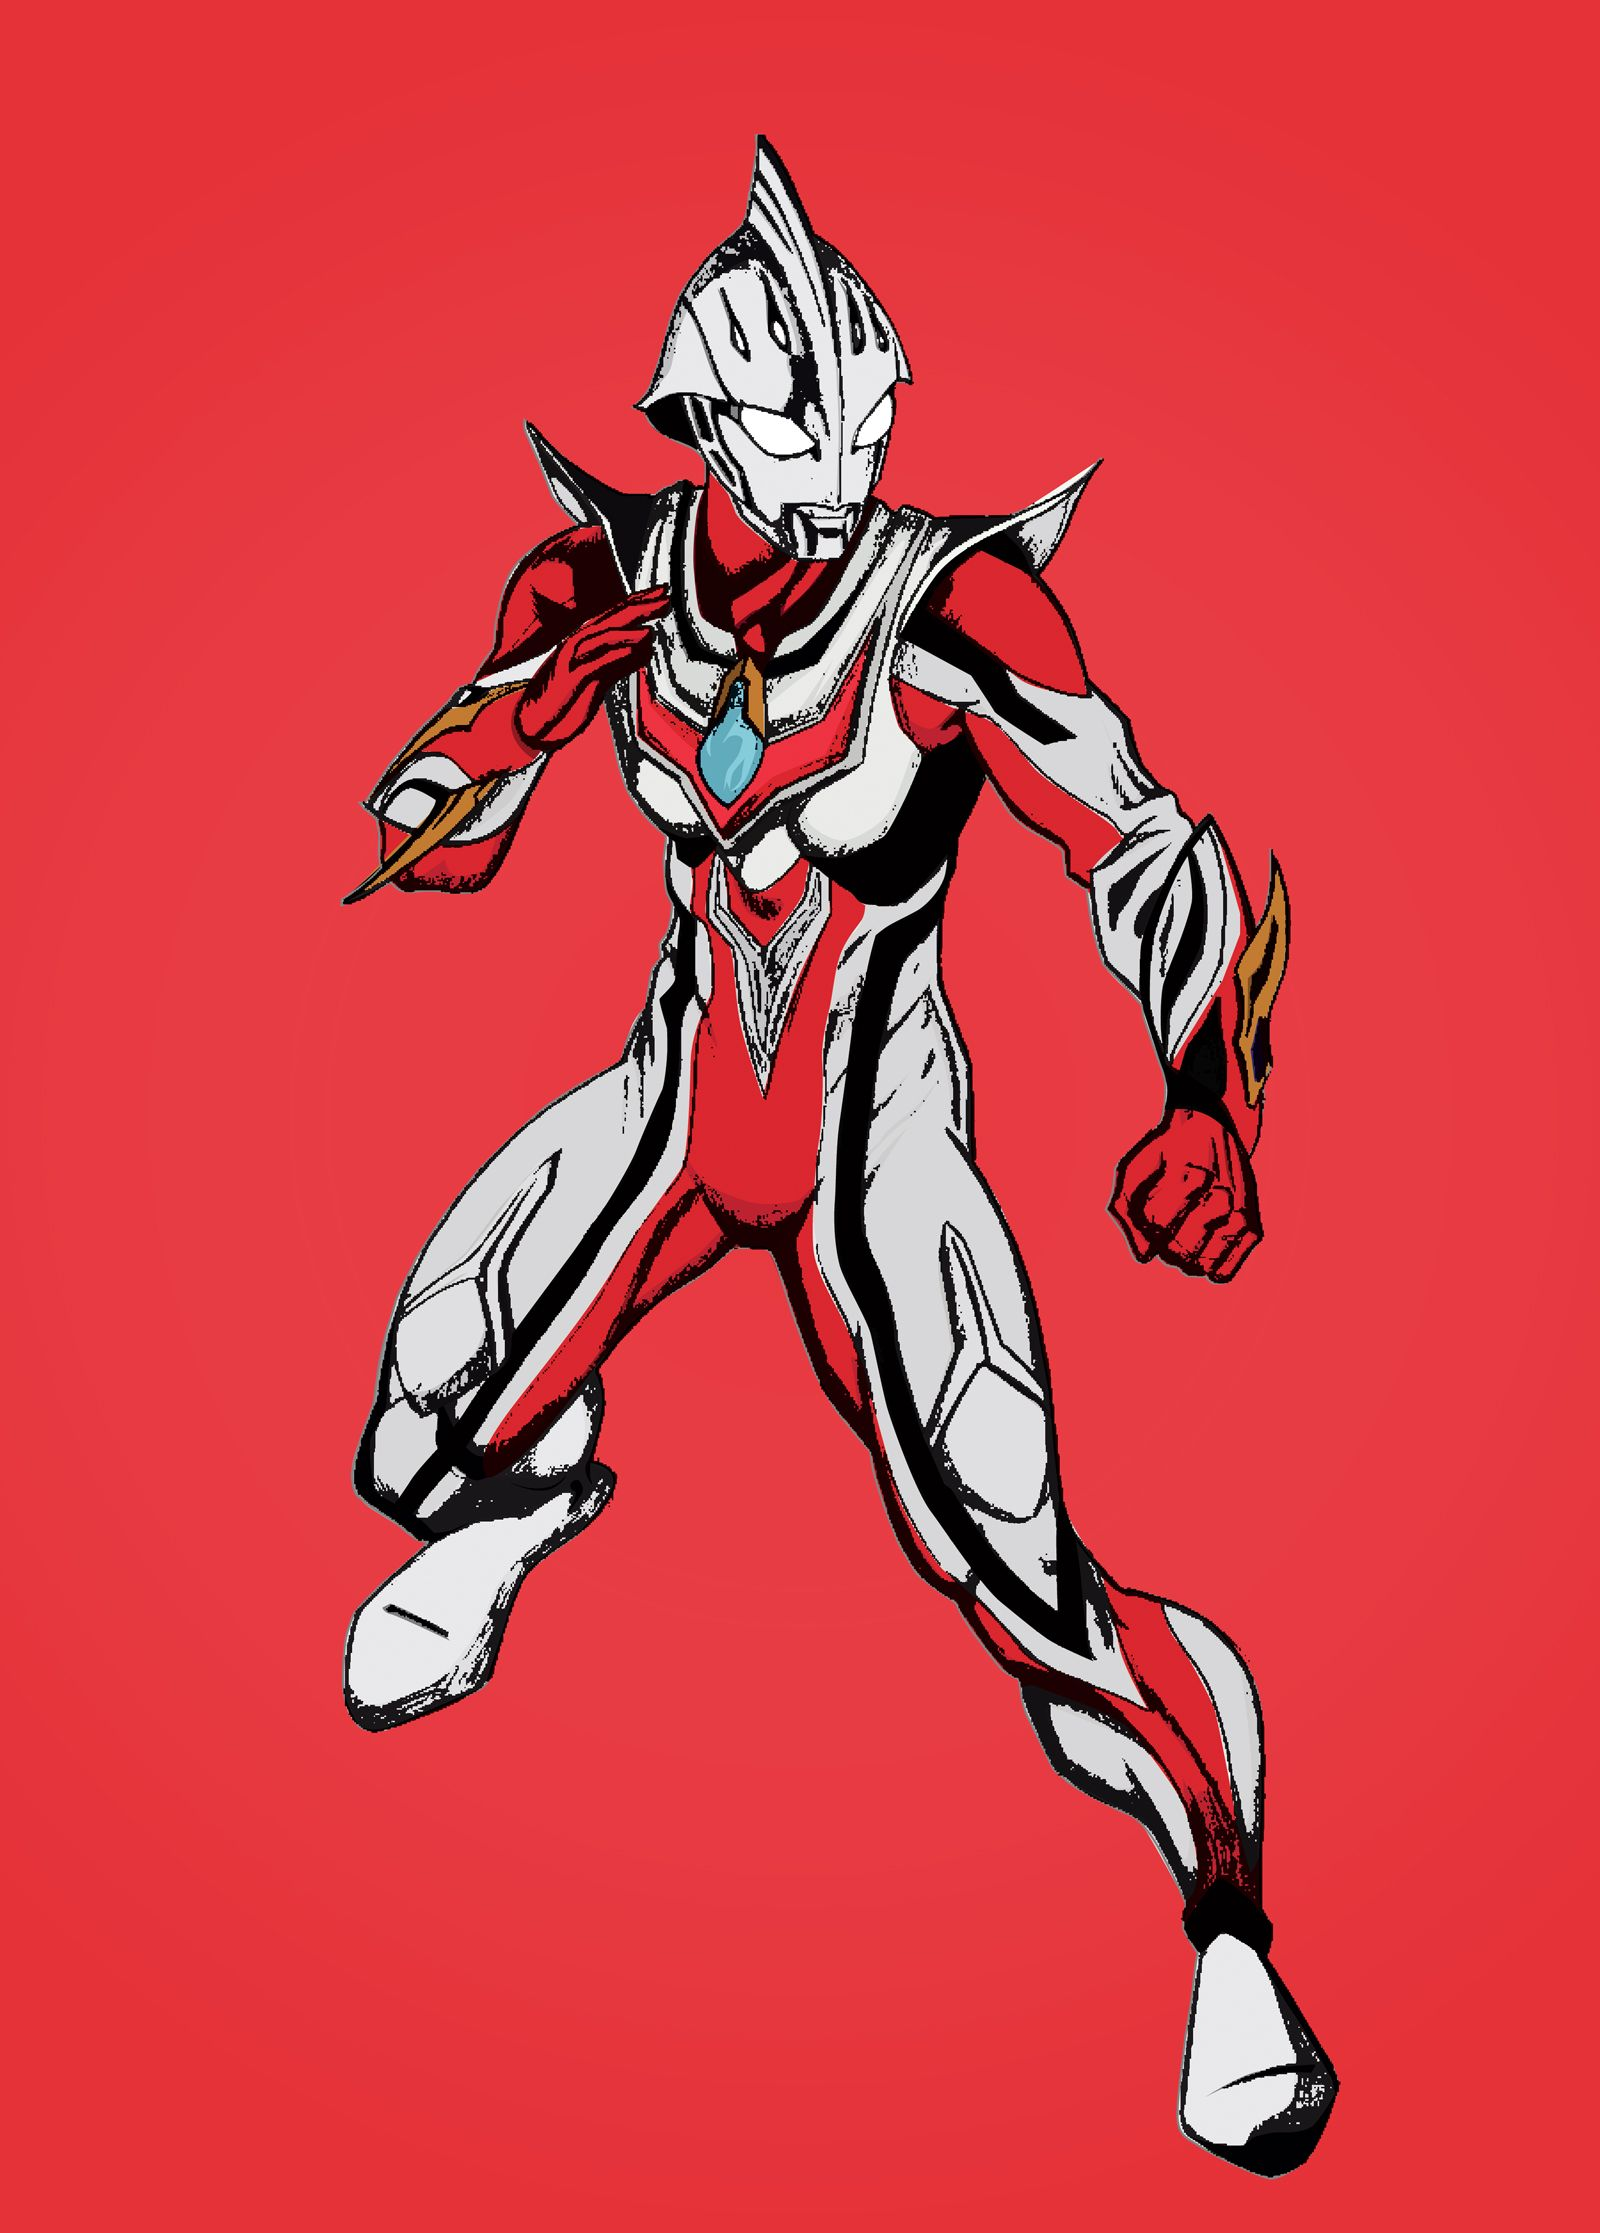 Ultraman Superhero art, Anime movies, Hero